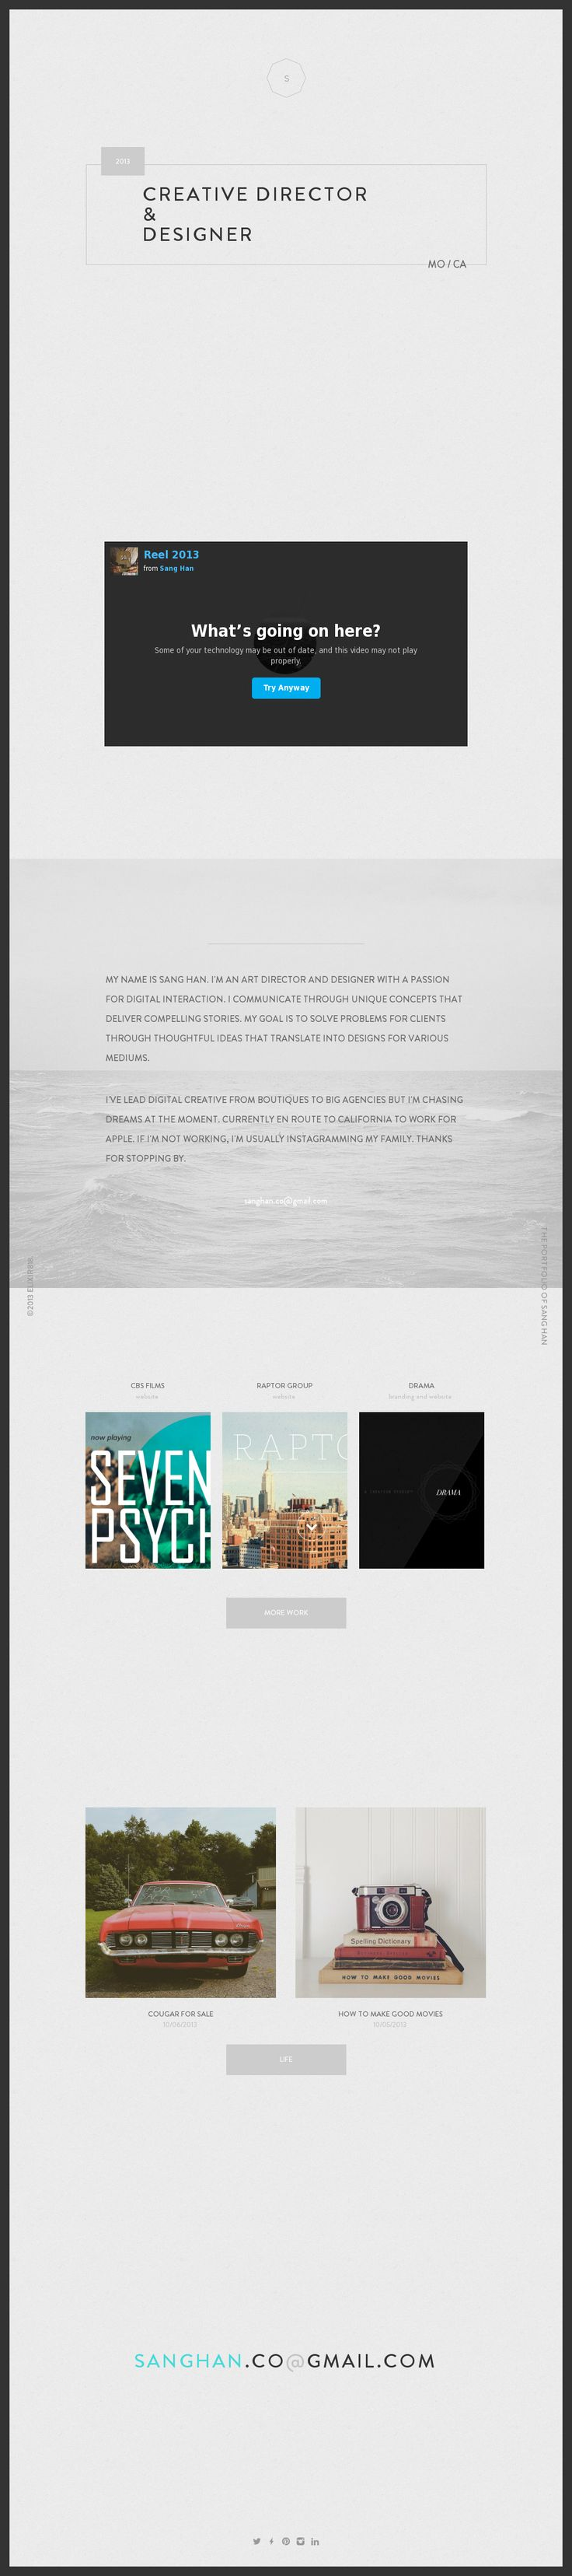 17 best images about clever layouts in web design the portfolio of sang han this one deserves the rare five star inspiration rating